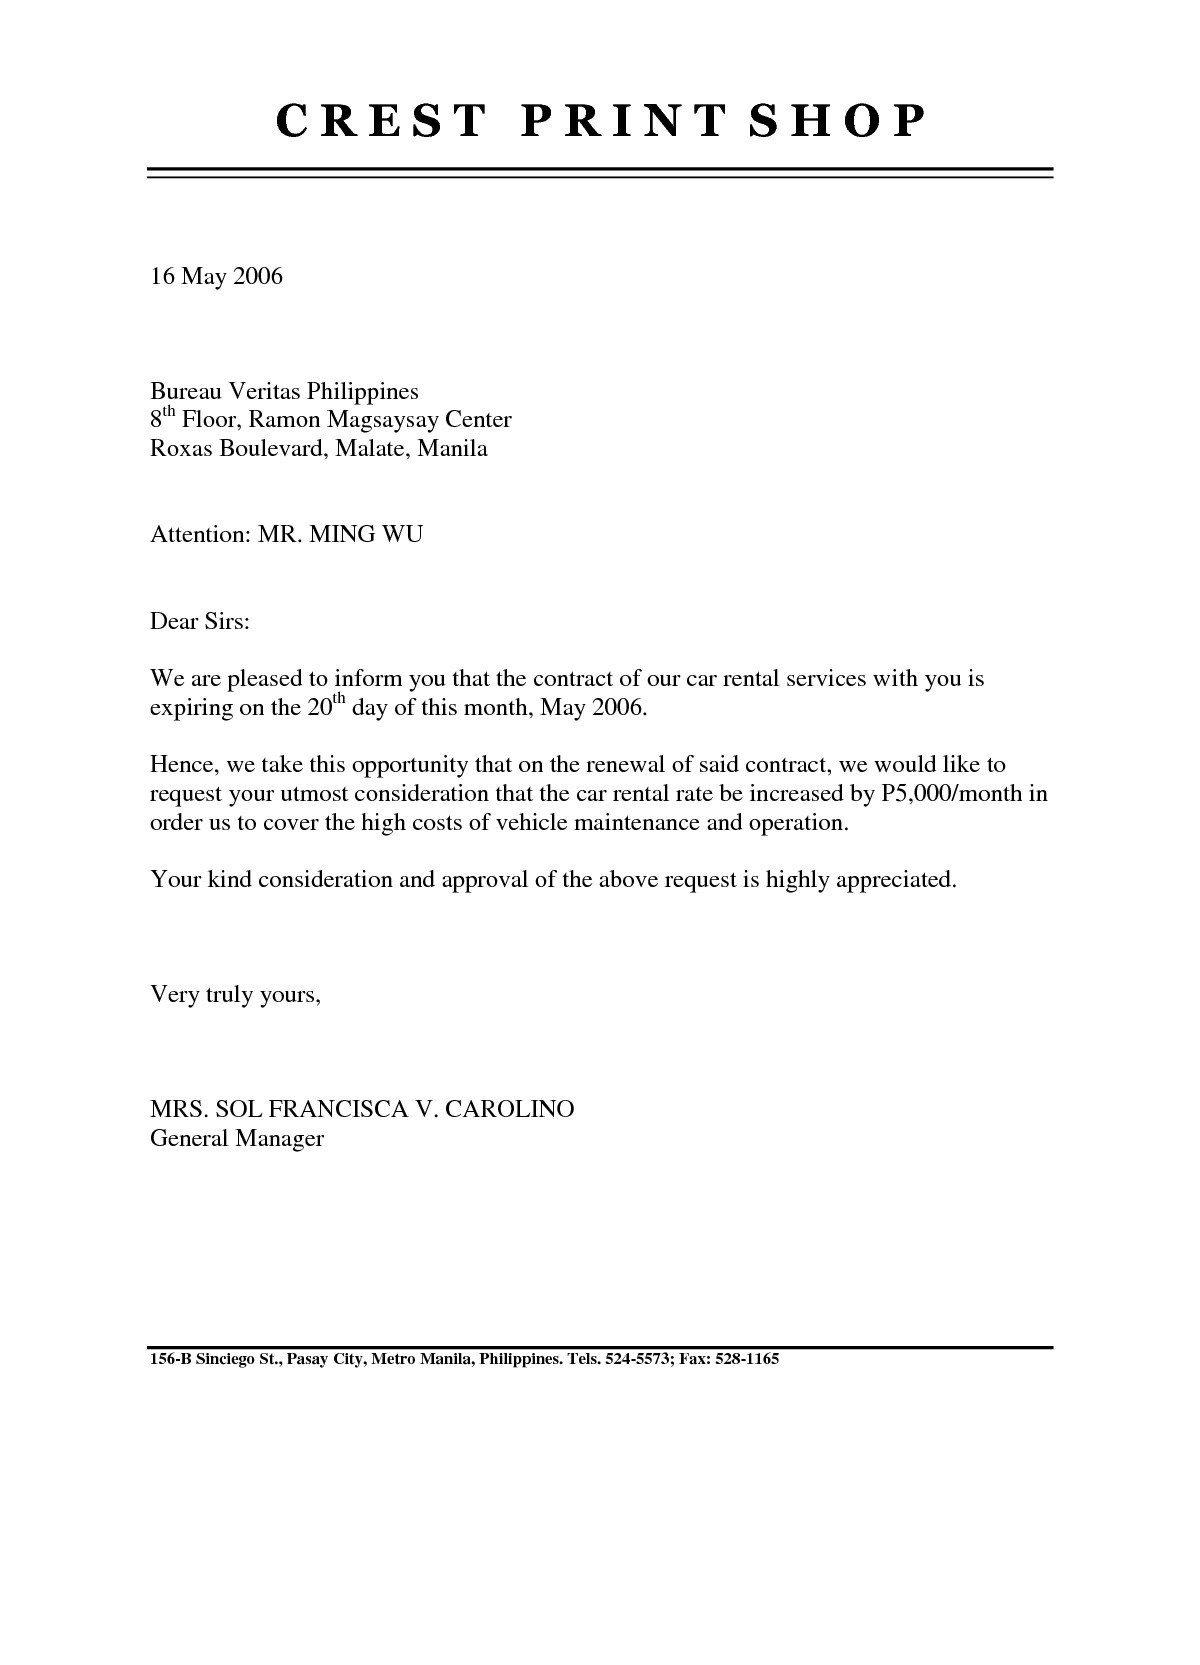 Demand Letter to Landlord Template - Tenancy Agreement Renewal Template Awesome Od Renewal Letter Sample